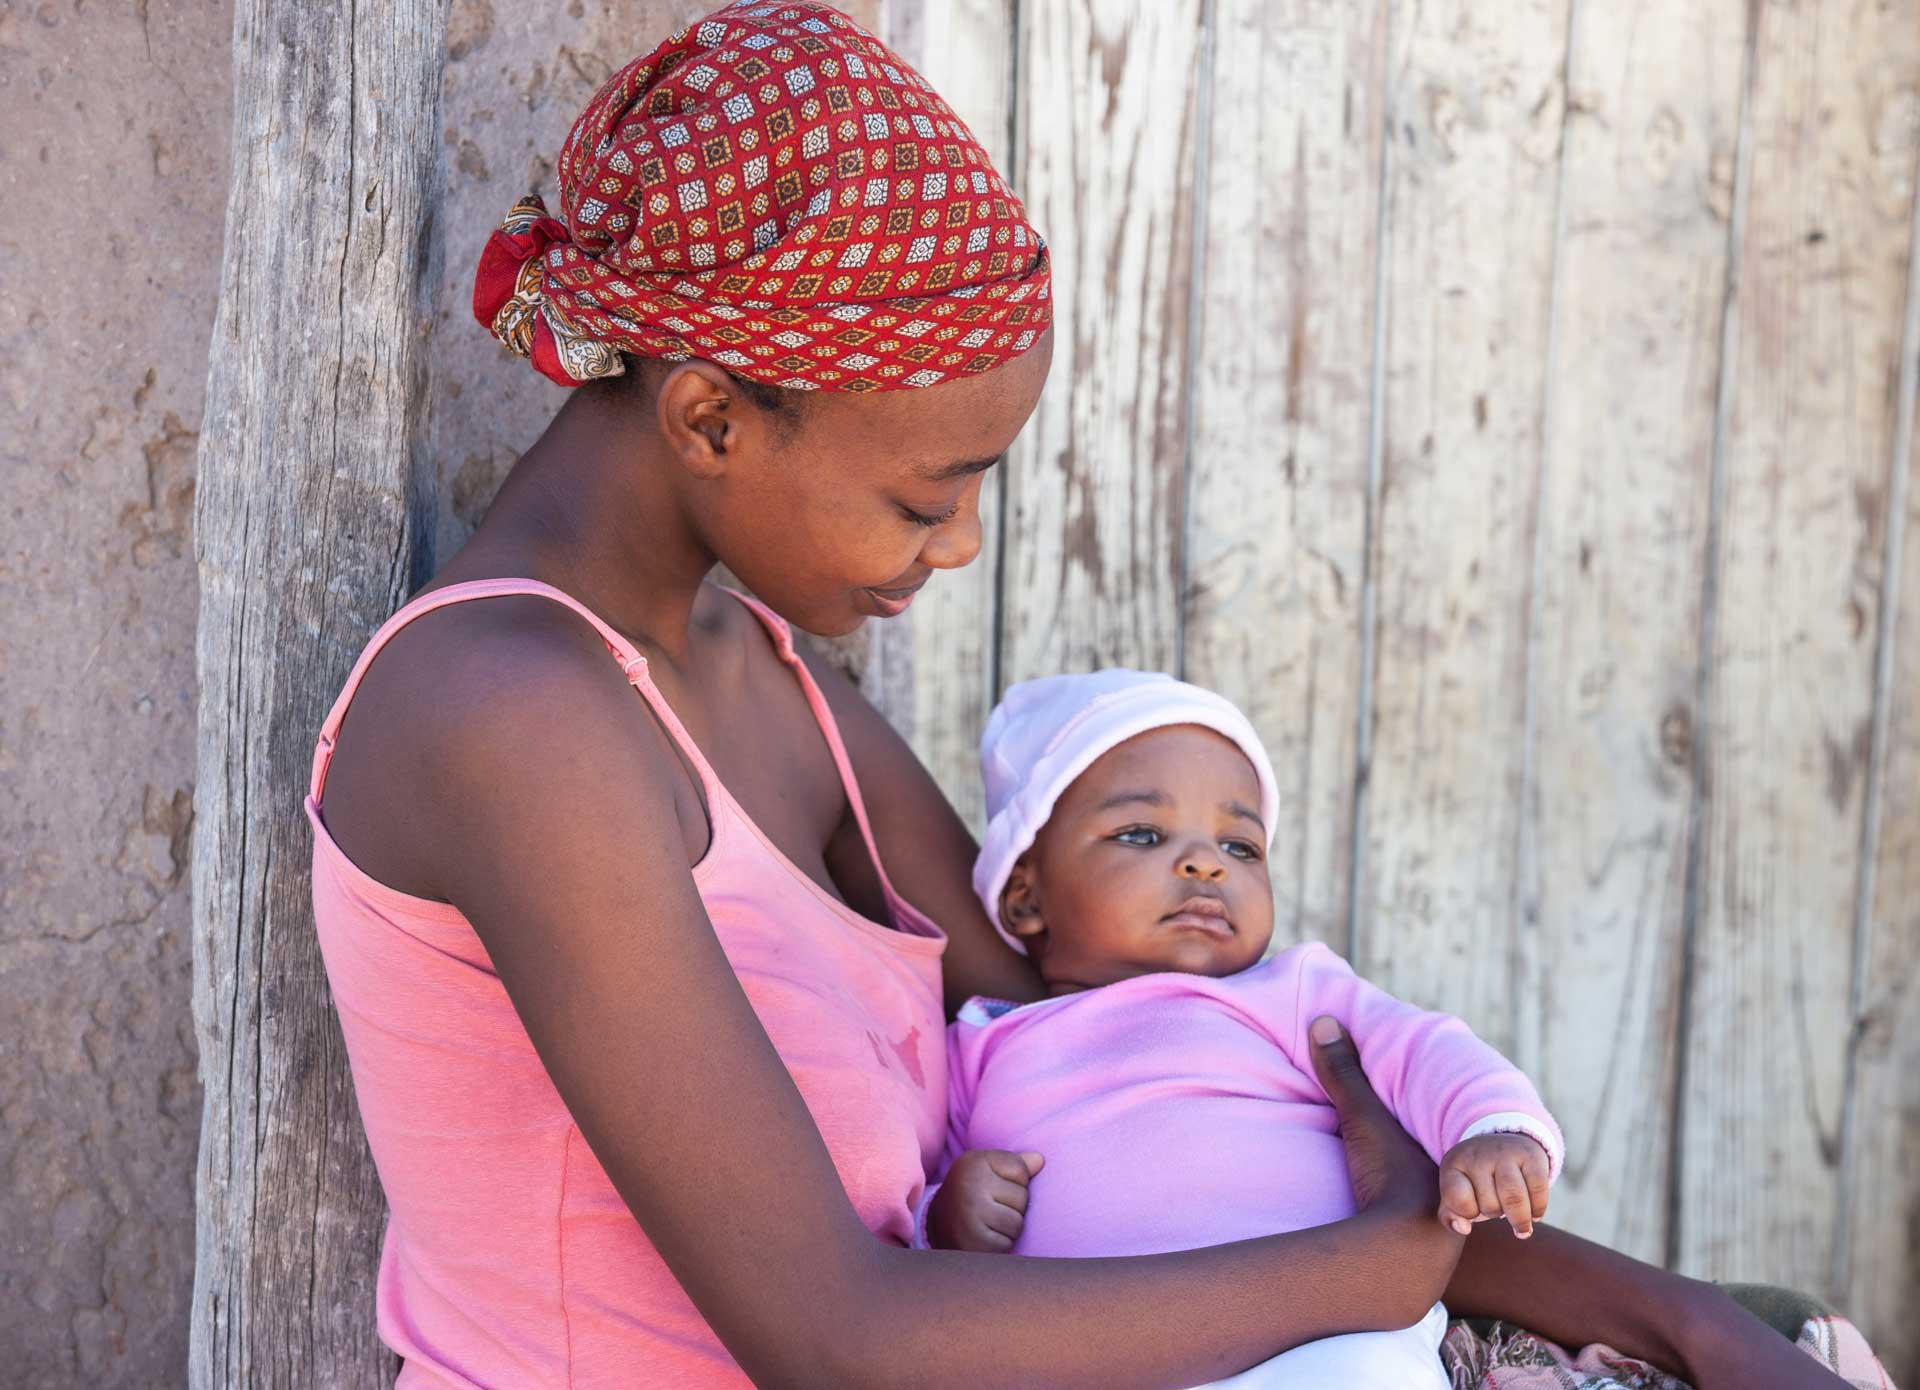 African woman holding baby while looking at him lovingly.